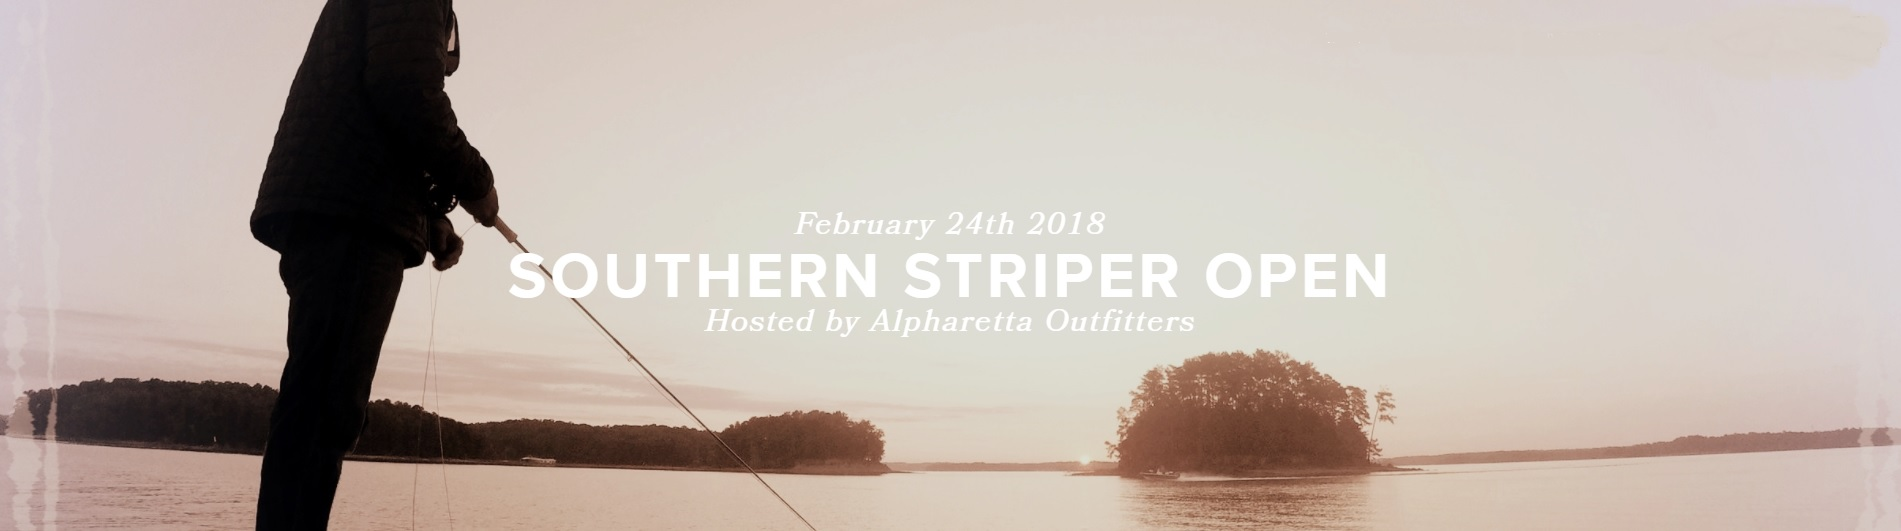 The 2018 Southern Striper Open